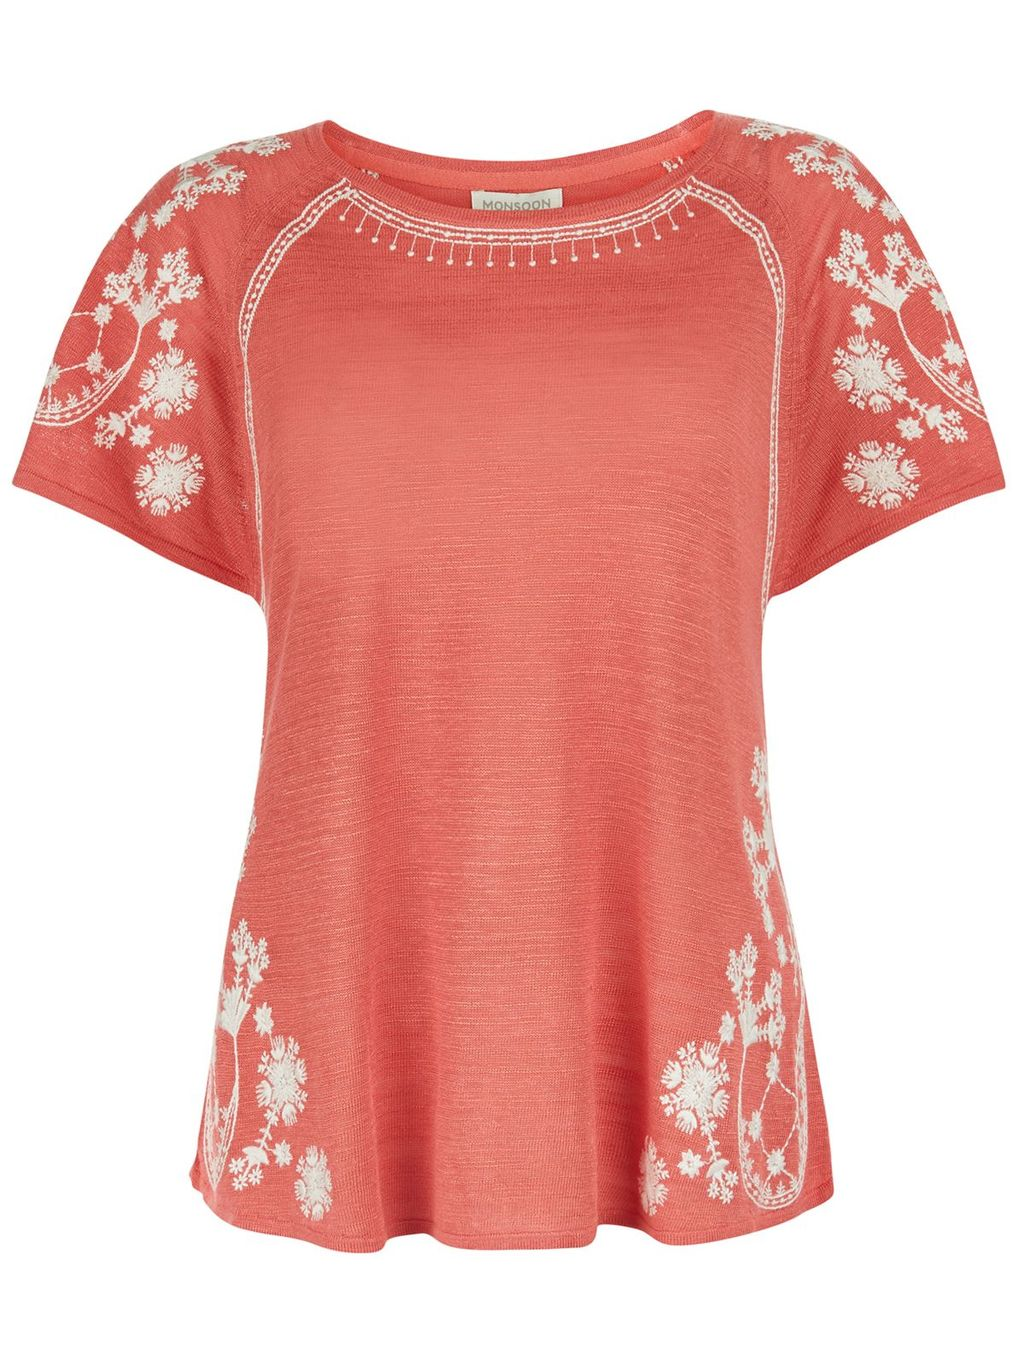 Valentina Embroidered Linen Top, Coral - neckline: round neck; sleeve style: dolman/batwing; predominant colour: coral; occasions: casual, creative work; length: standard; style: top; fibres: linen - mix; fit: body skimming; sleeve length: short sleeve; texture group: linen; pattern type: fabric; pattern: patterned/print; embellishment: embroidered; season: s/s 2016; wardrobe: highlight